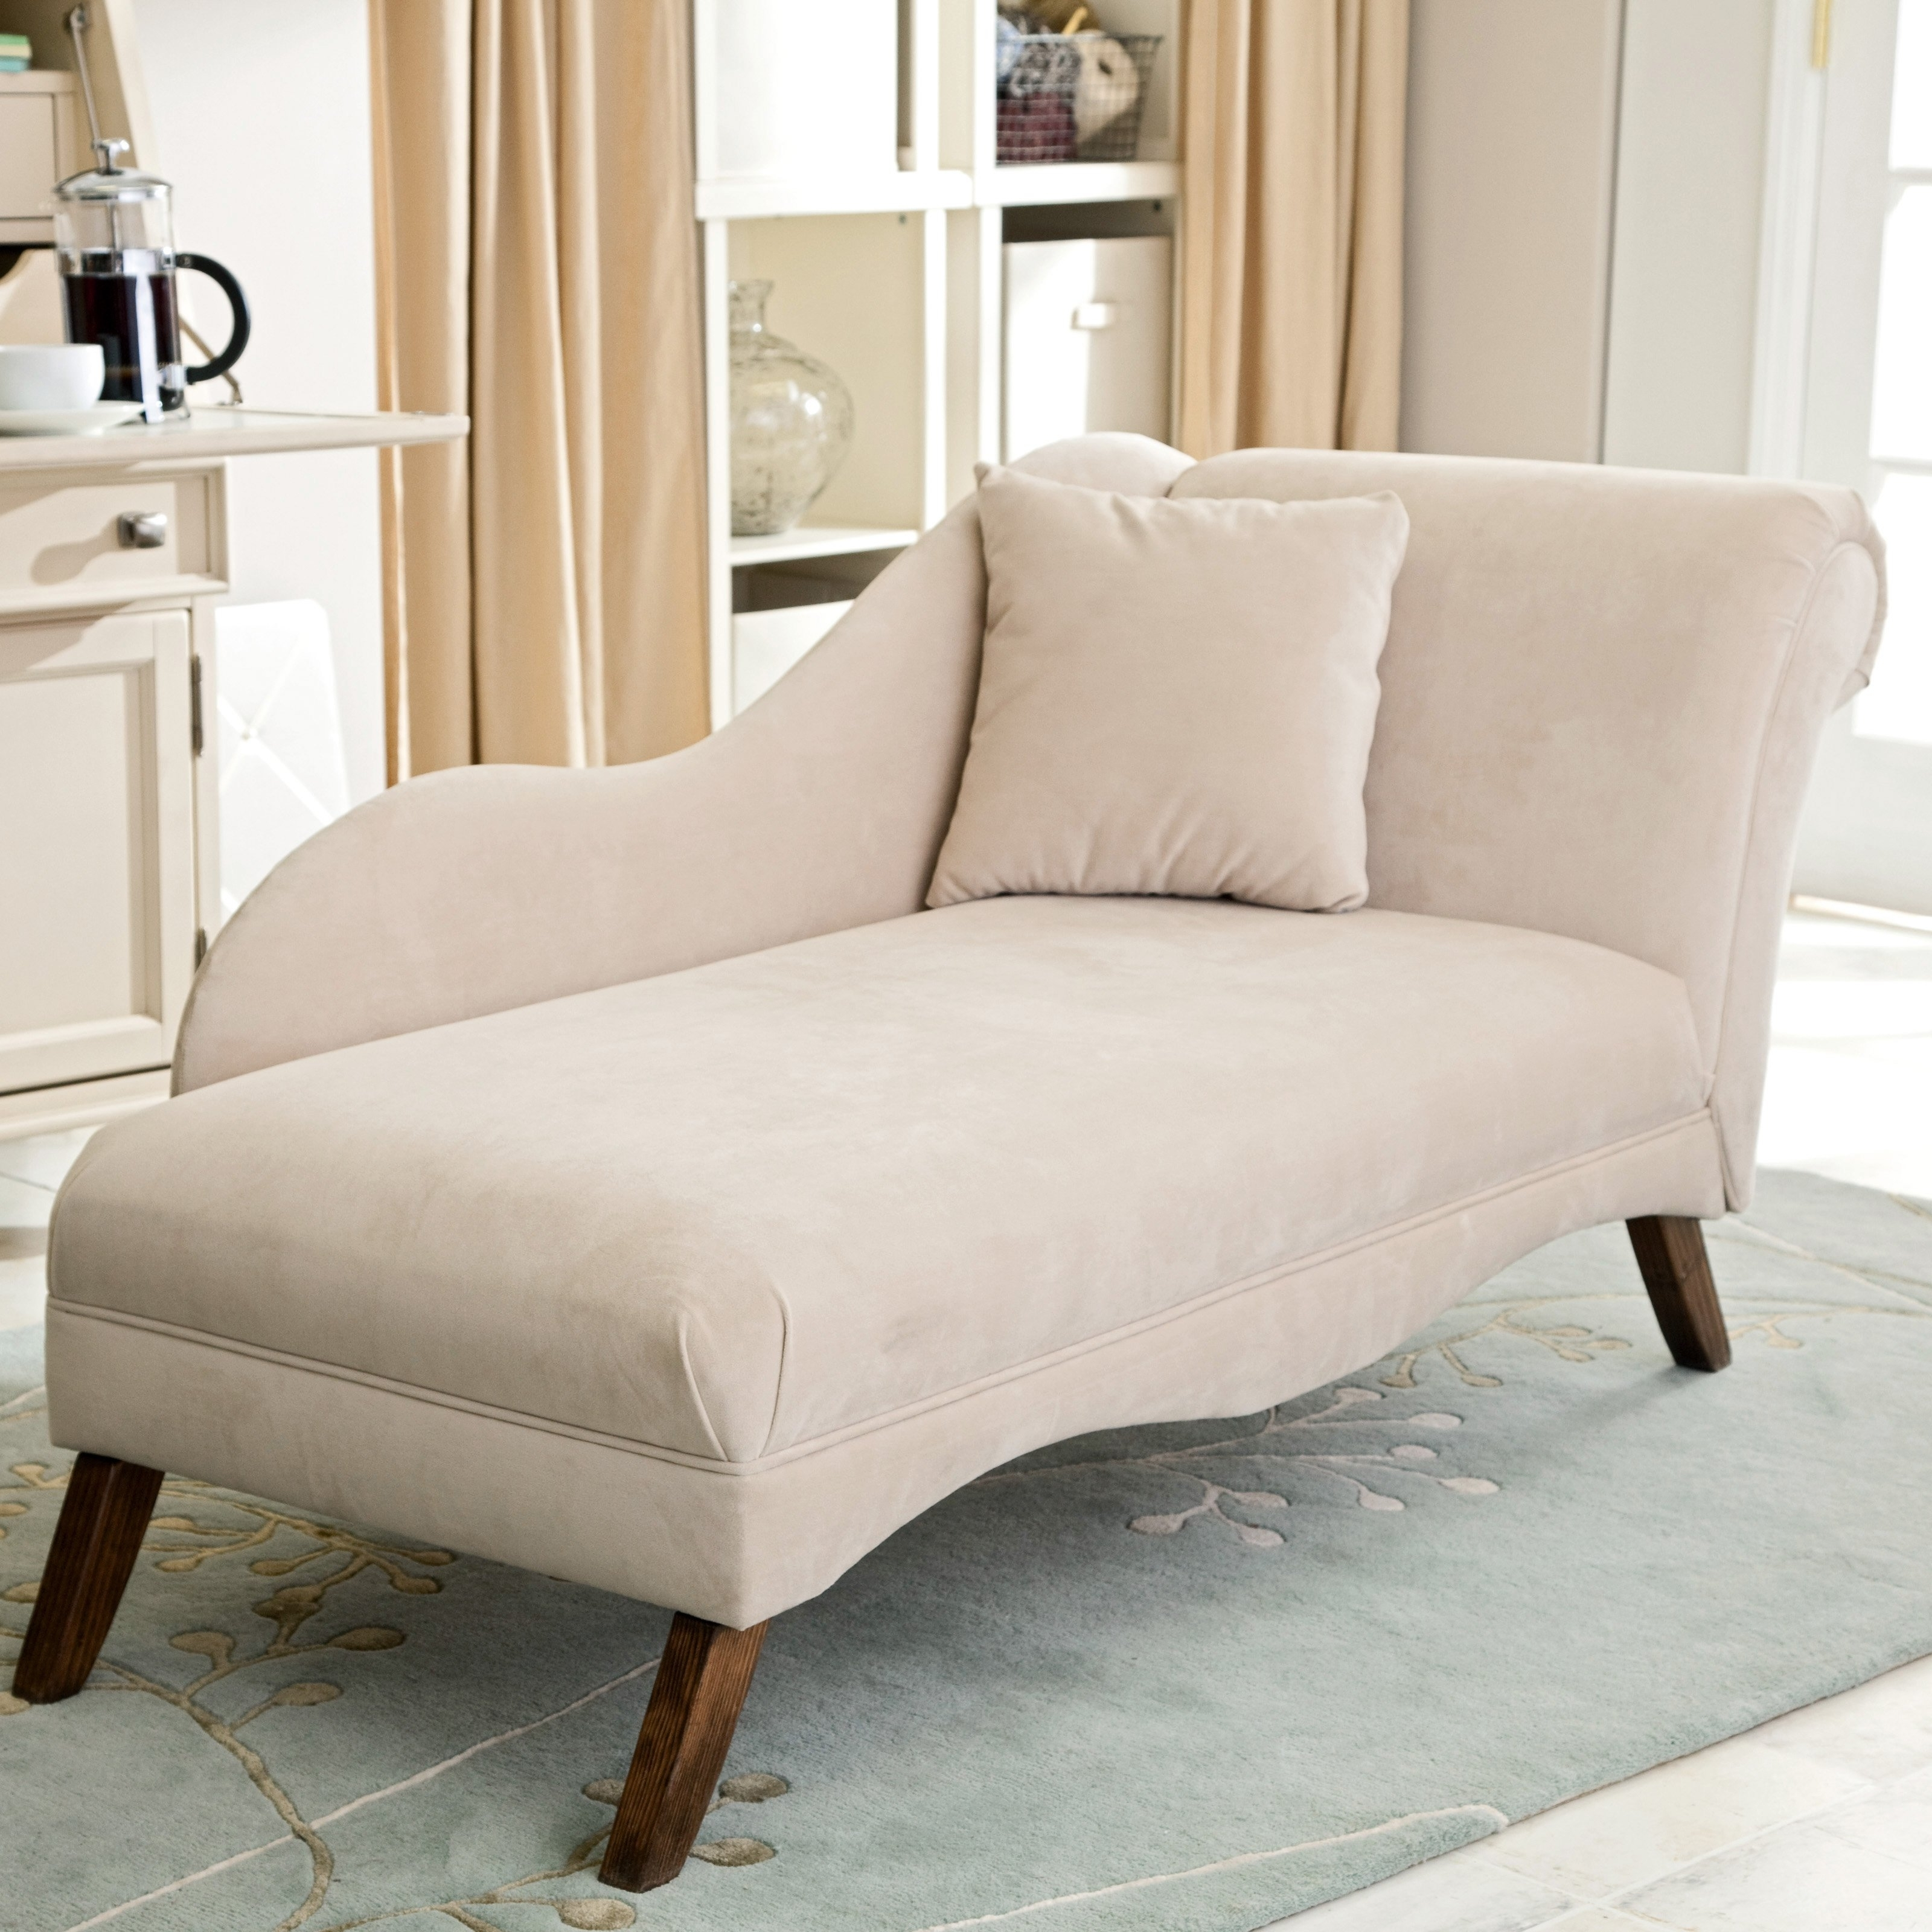 Leather Chaise Lounge Chairs Indoors • Lounge Chairs Ideas With Widely Used Chaise Lounge Chairs For Indoor (View 3 of 15)